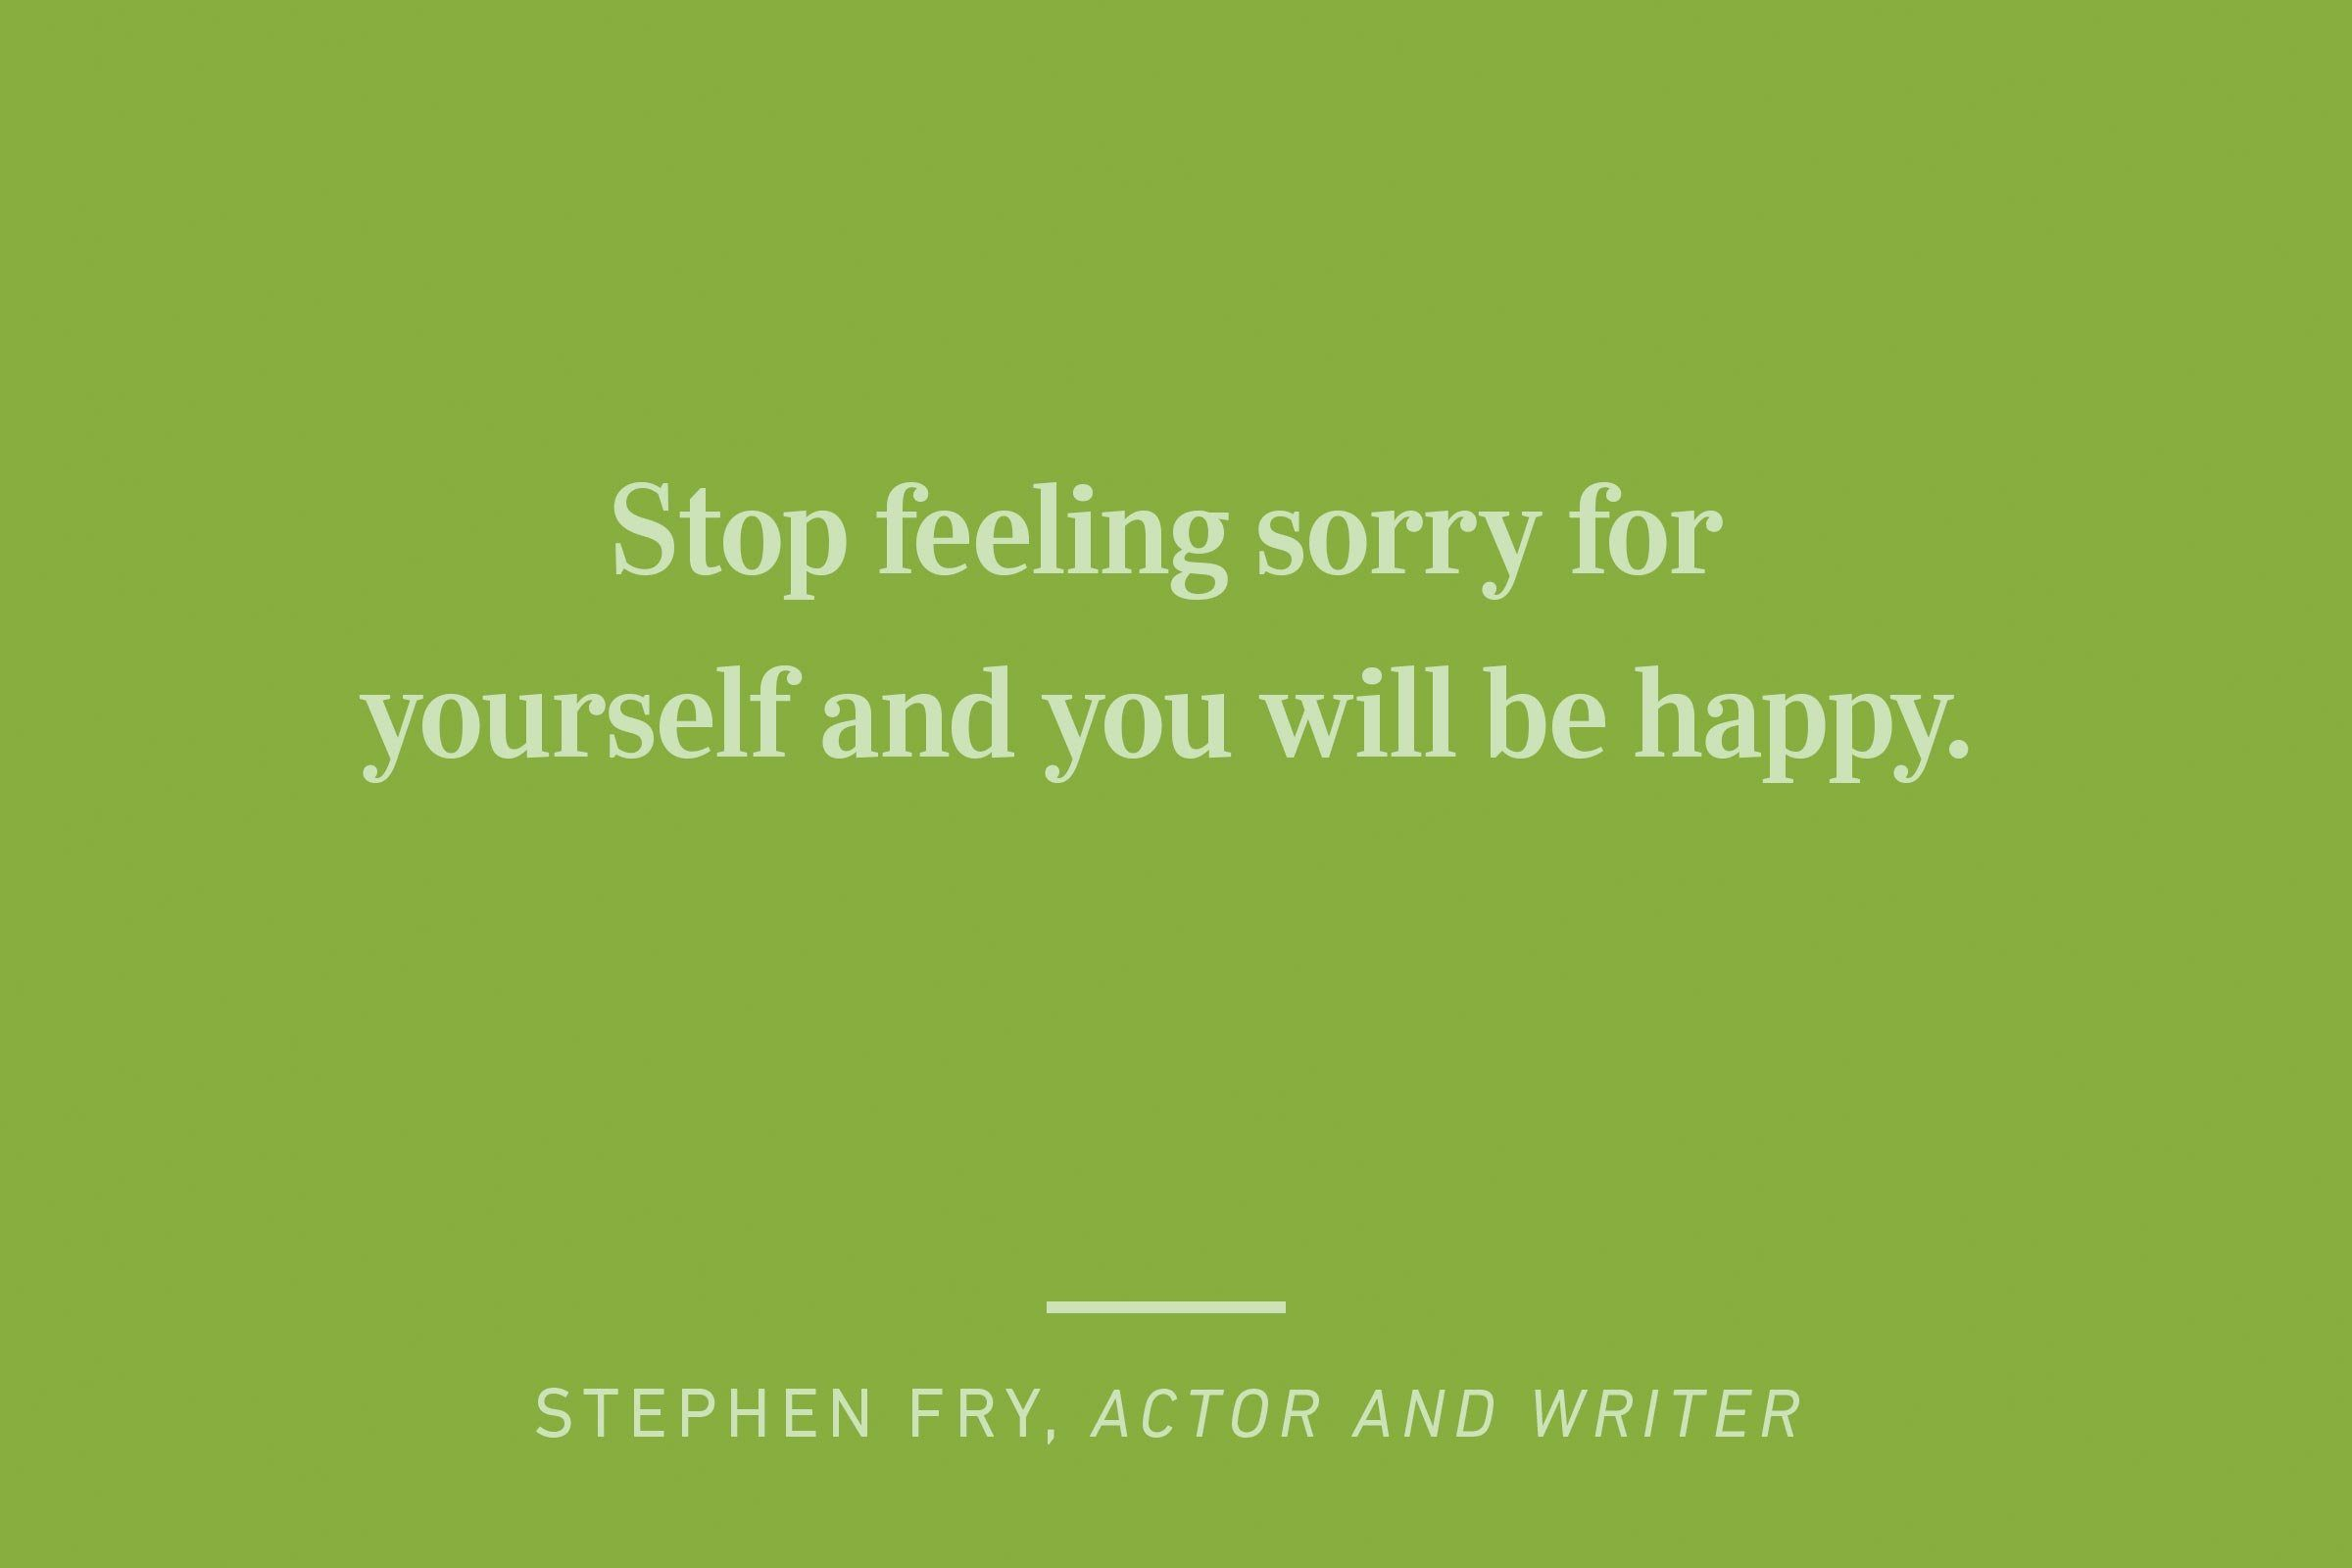 stephen fry happiness quote